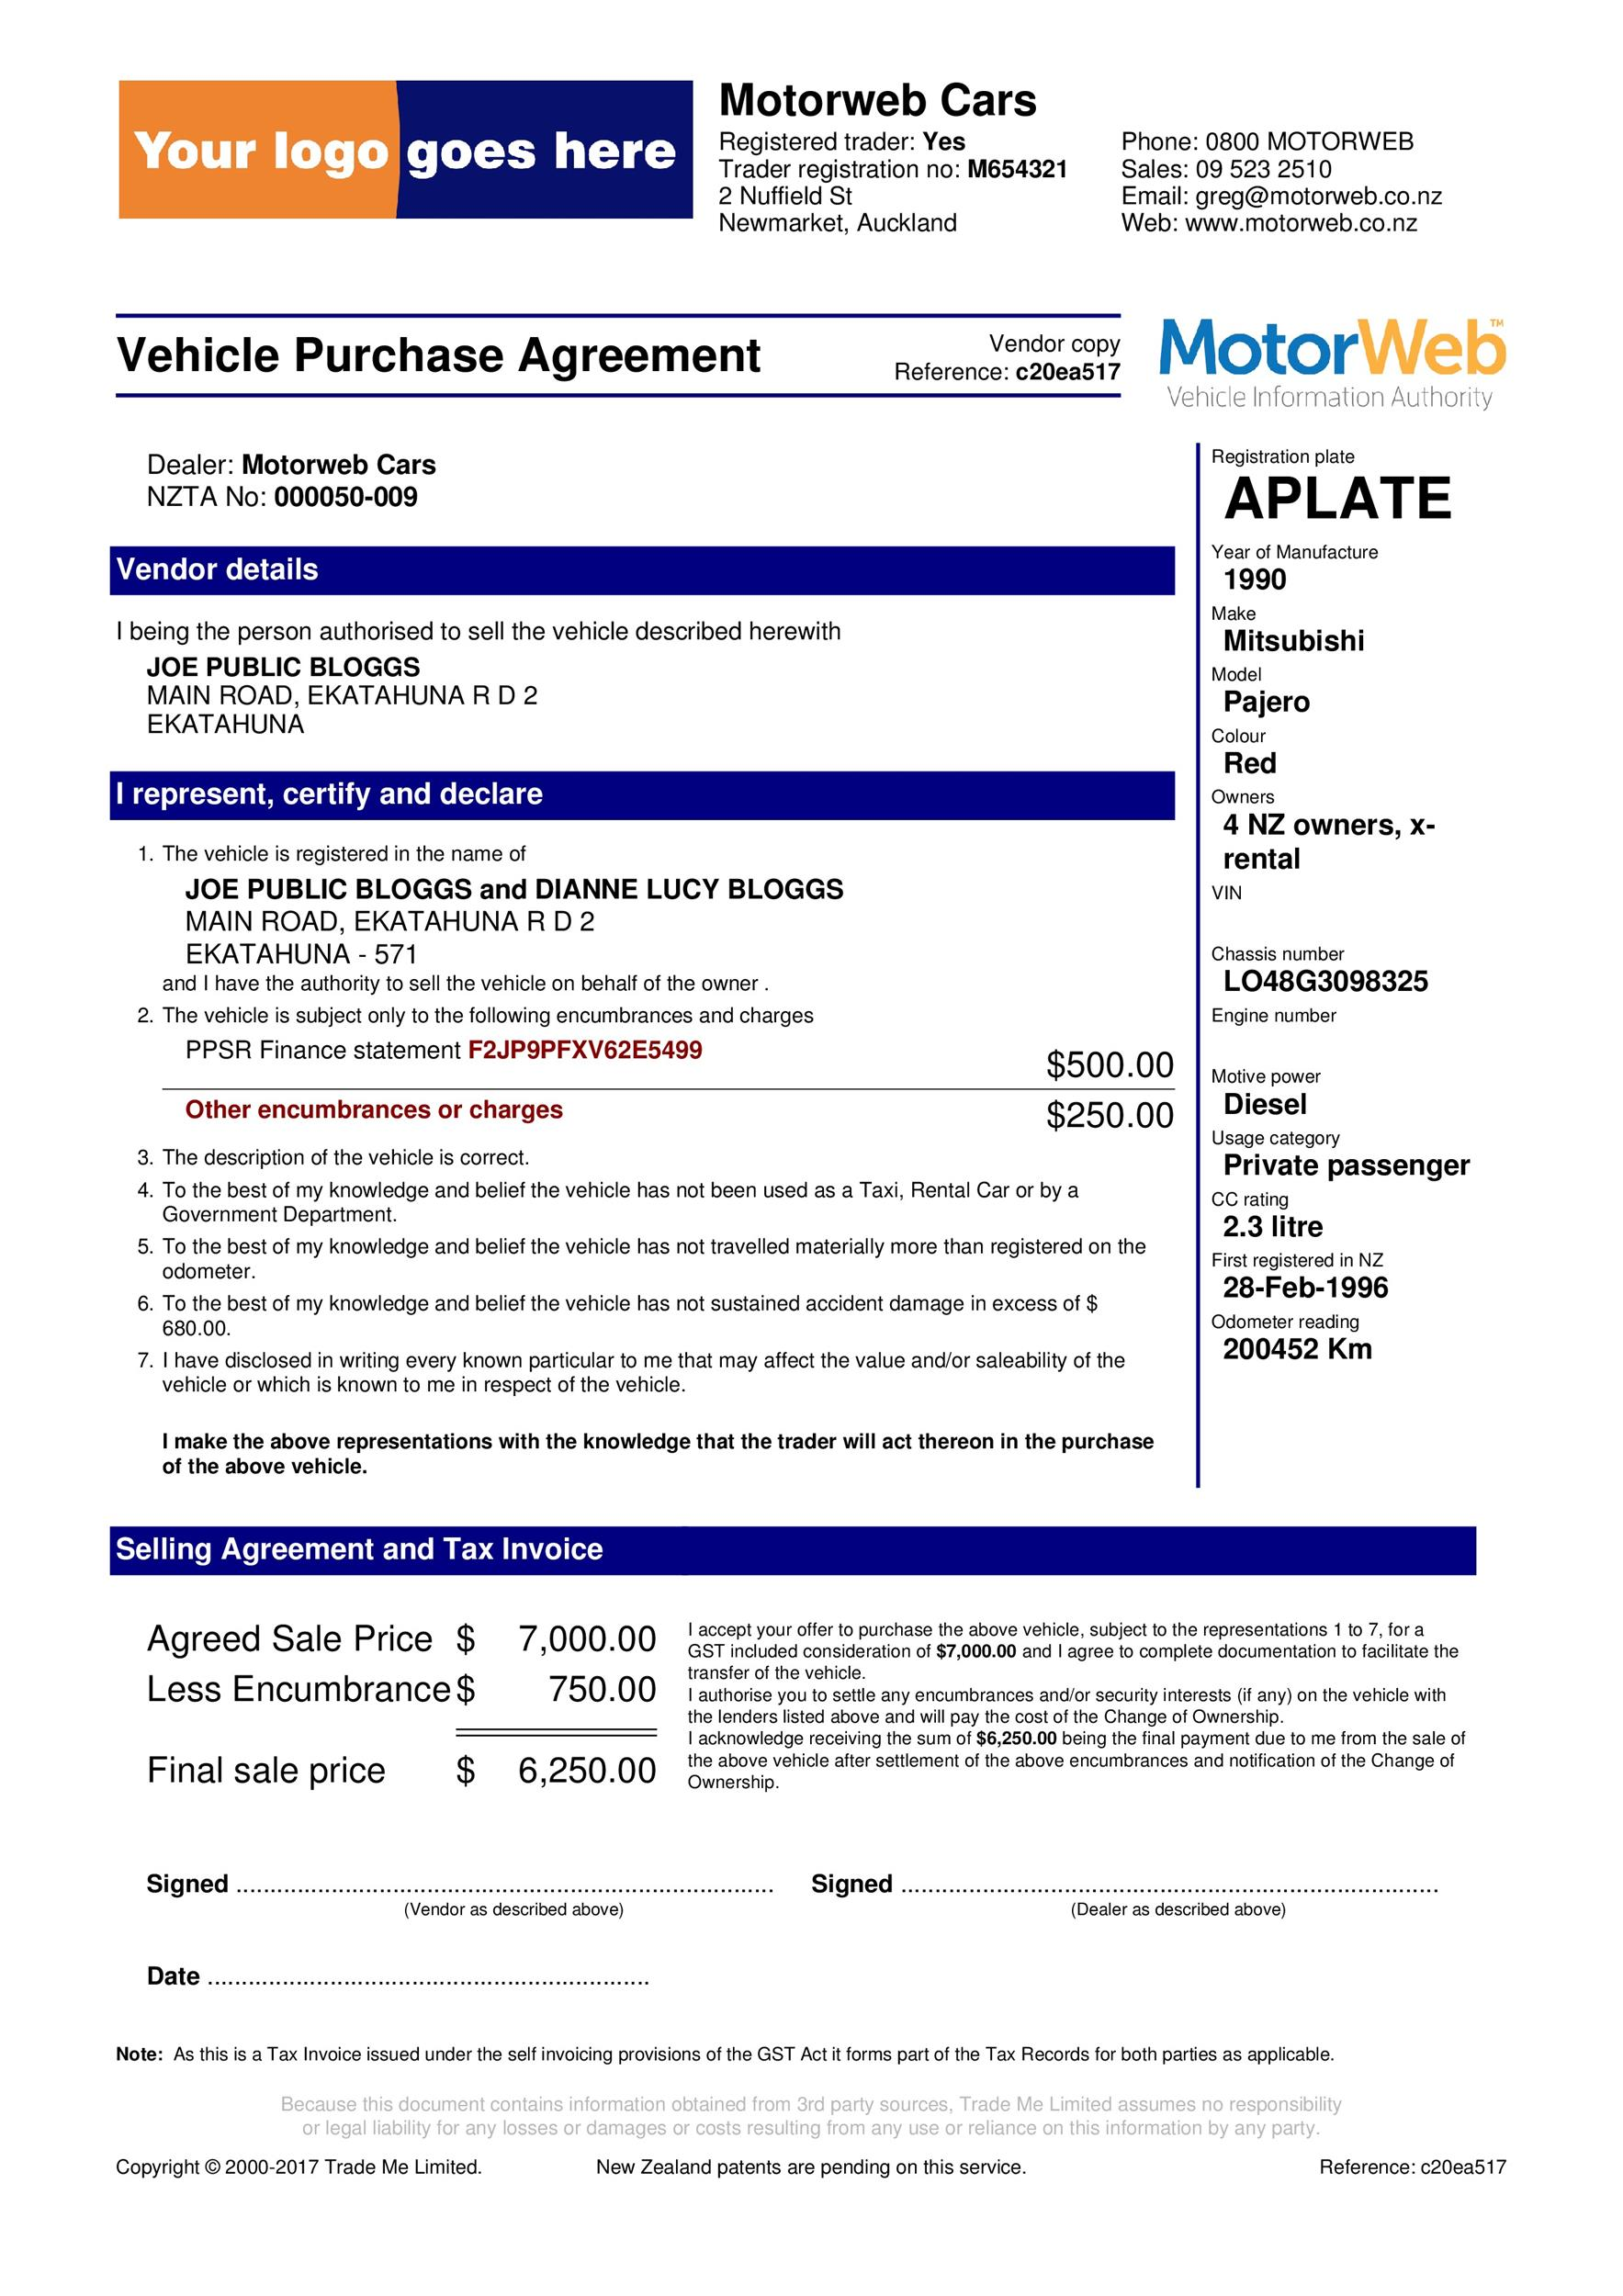 Free vehicle purchase agreement 16